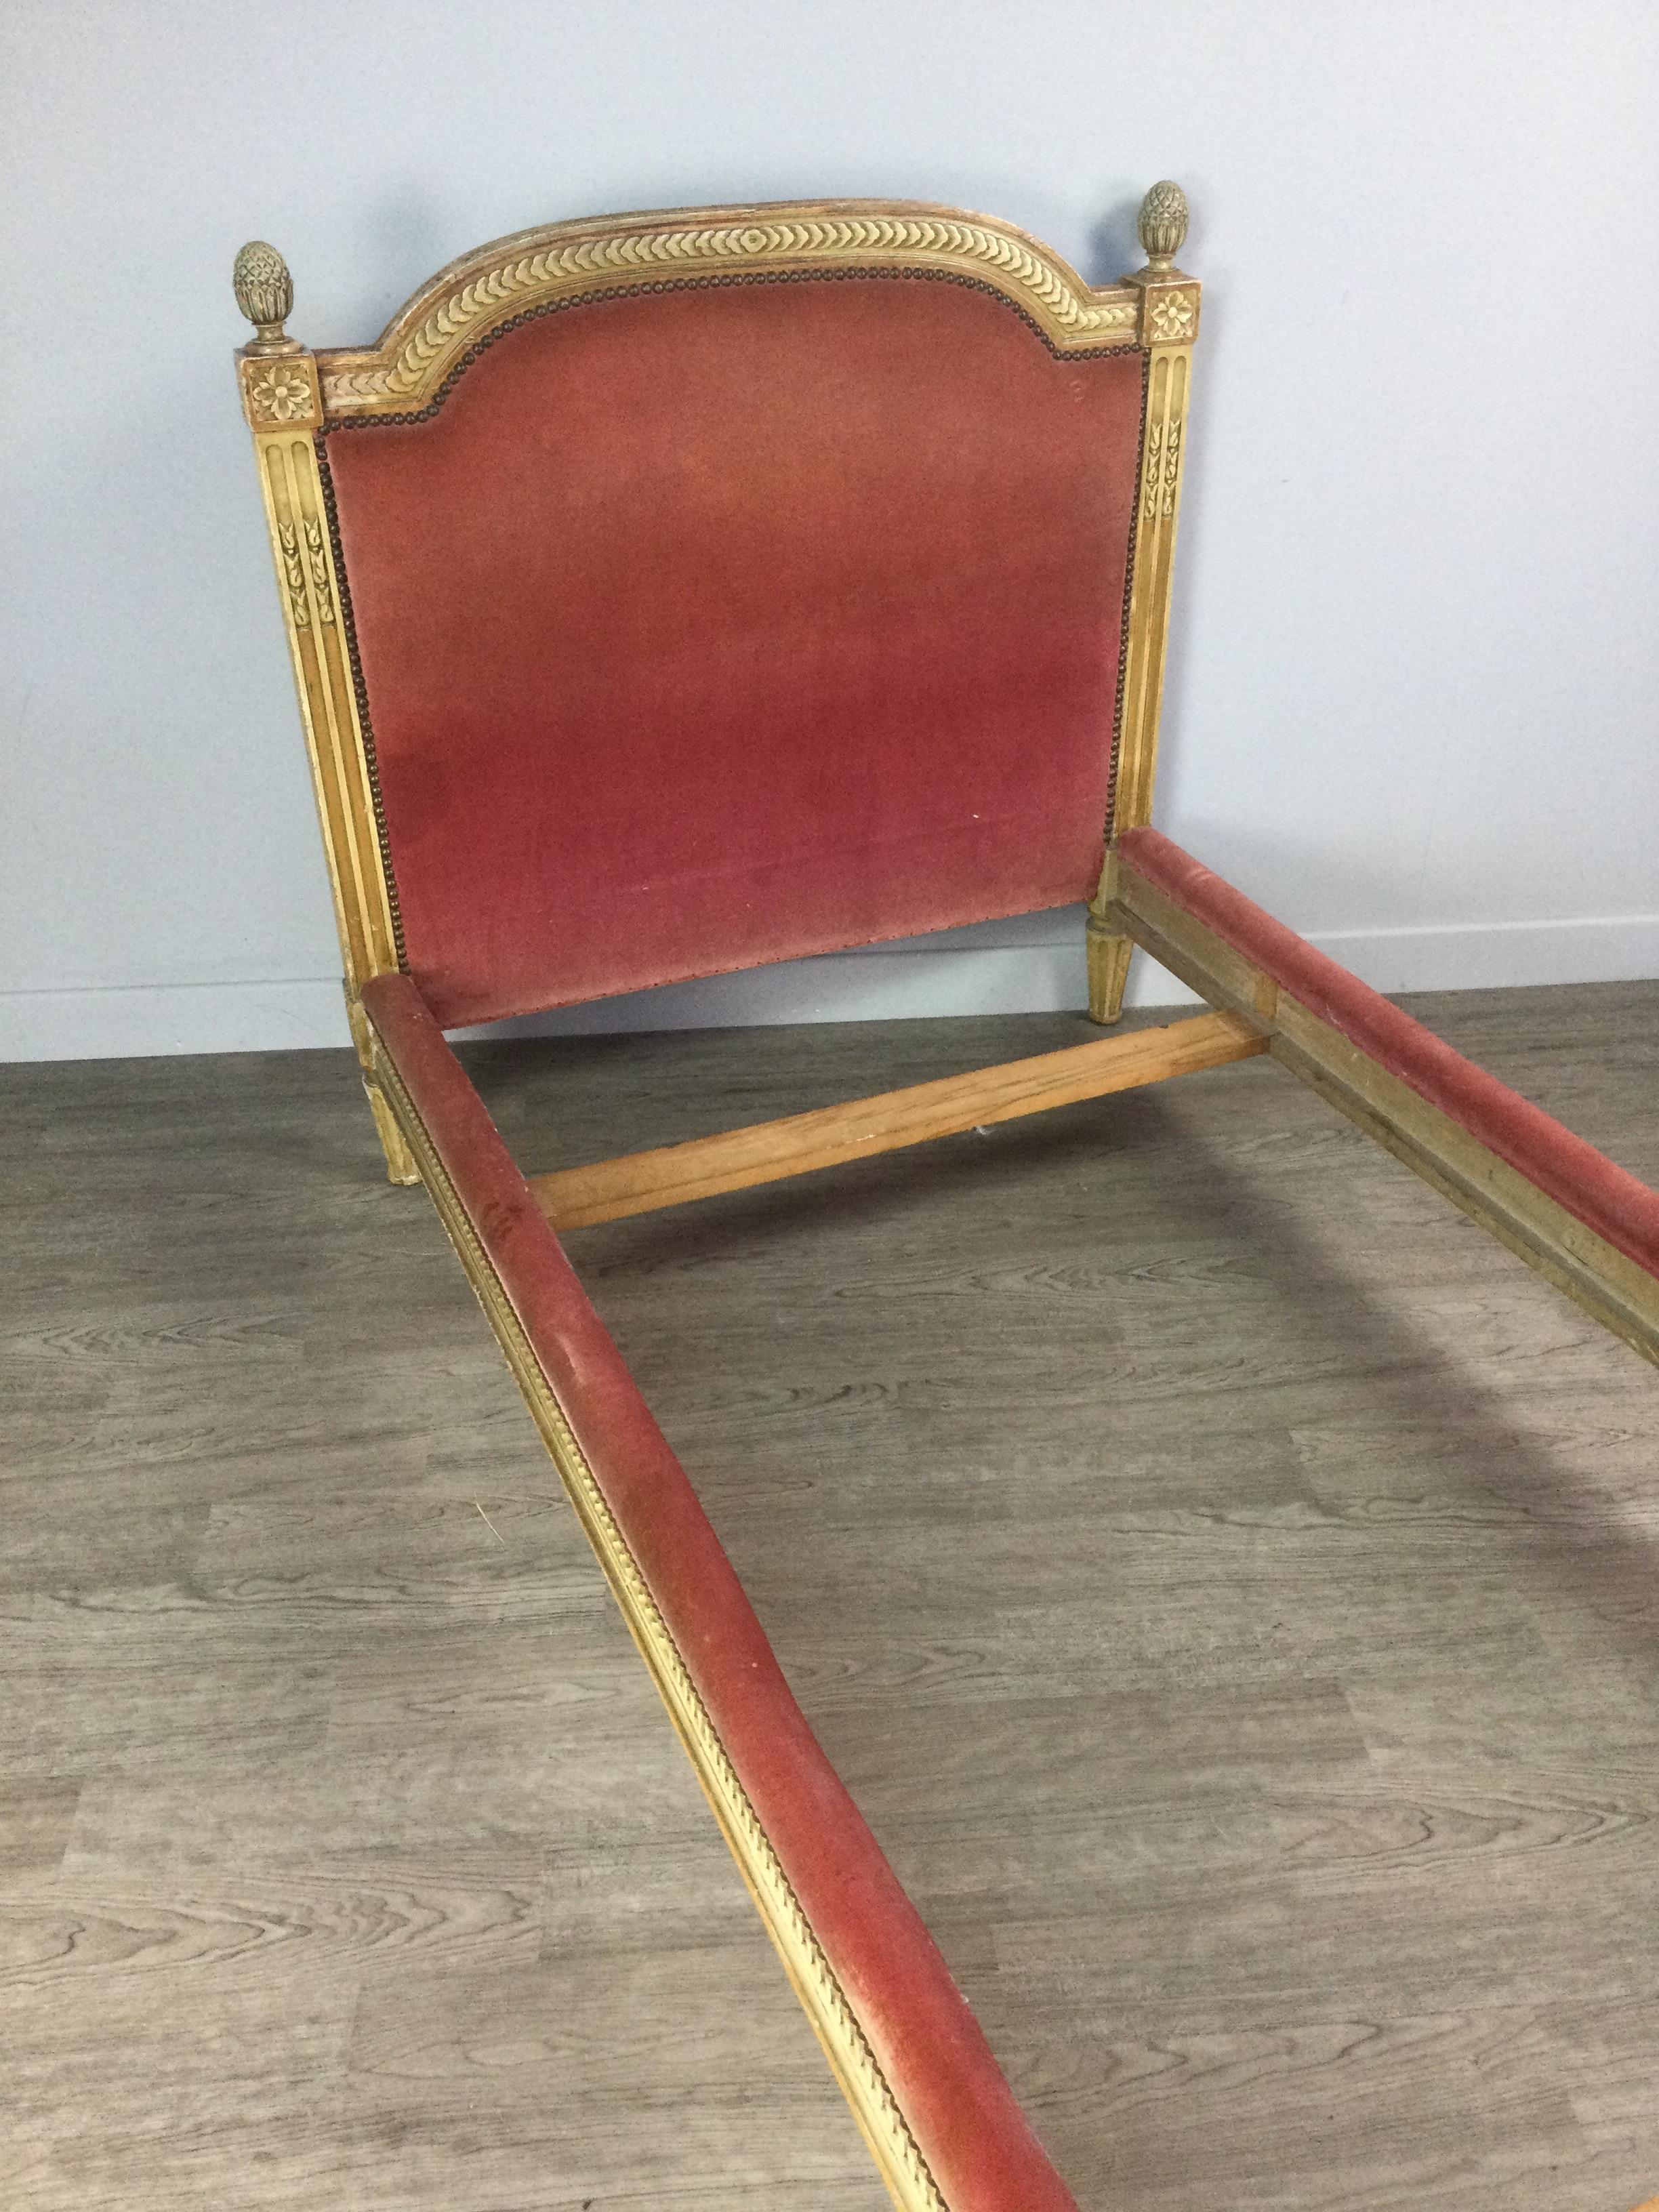 A FRENCH GILT-WOOD SINGLE BEDSTEAD - Image 2 of 2